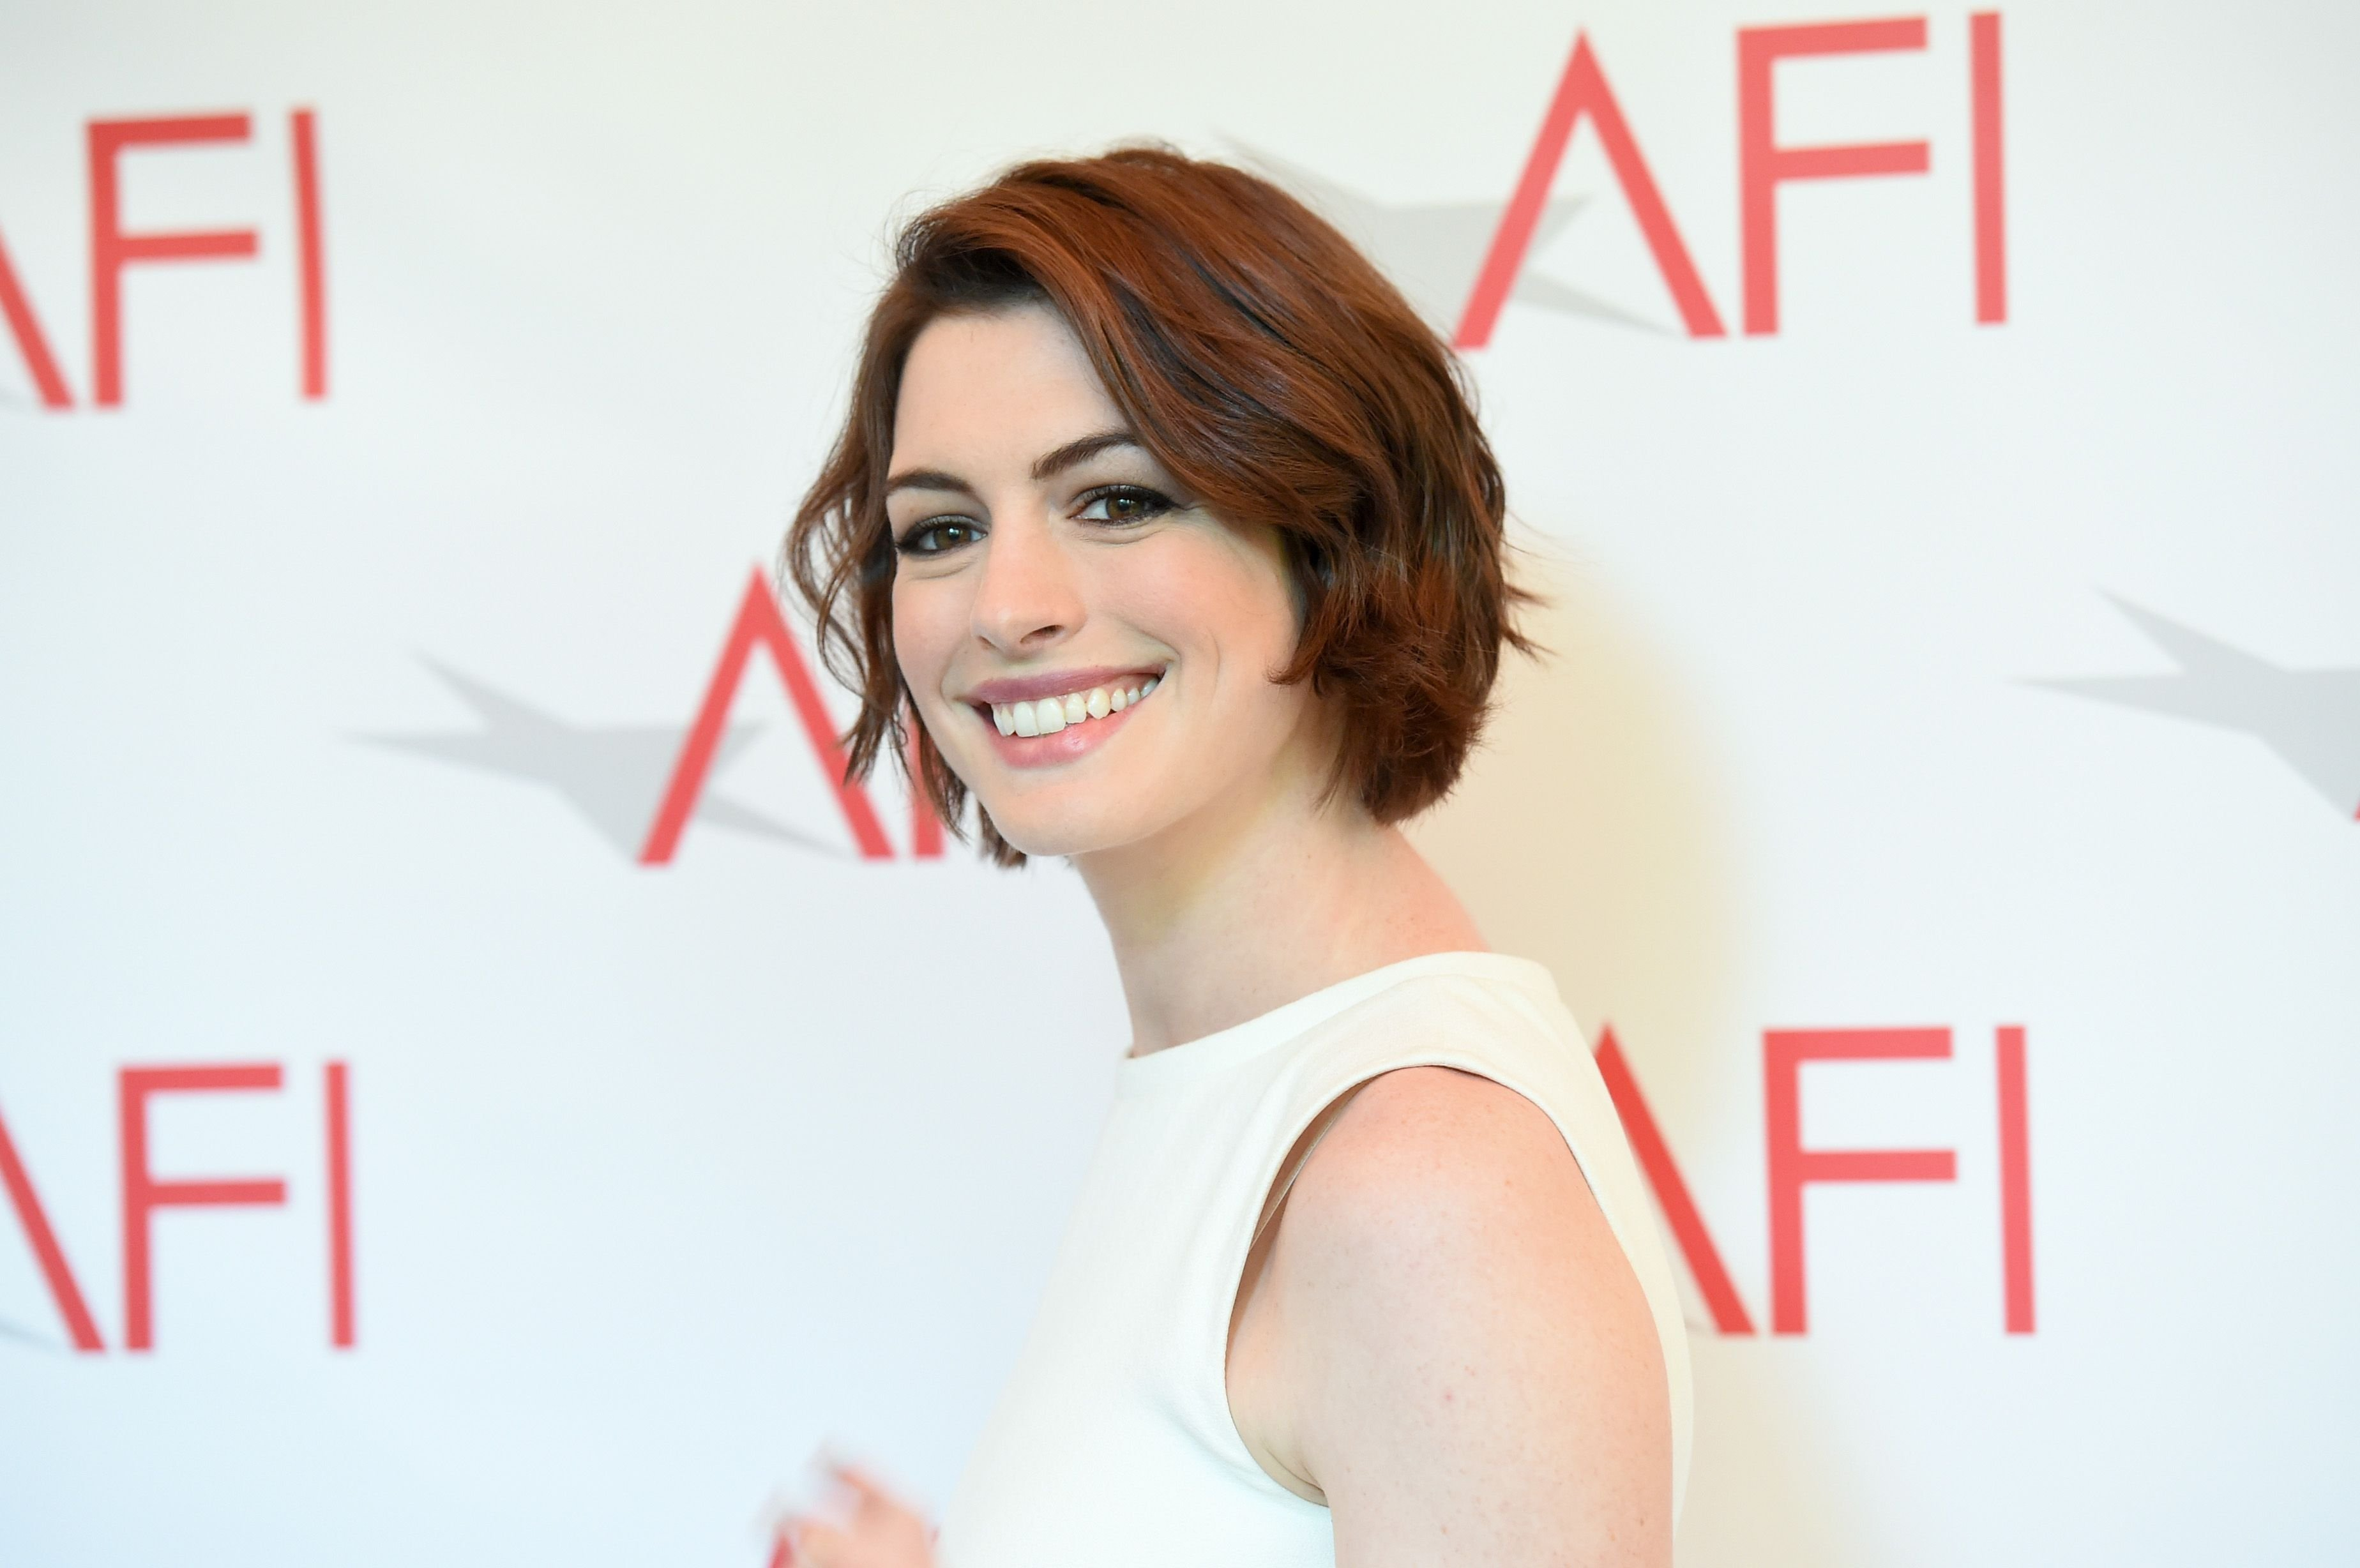 Anne Hathaway attends the 15th Annual AFI Awards in January 2015 in Beverly Hills, California   Source: Getty Images